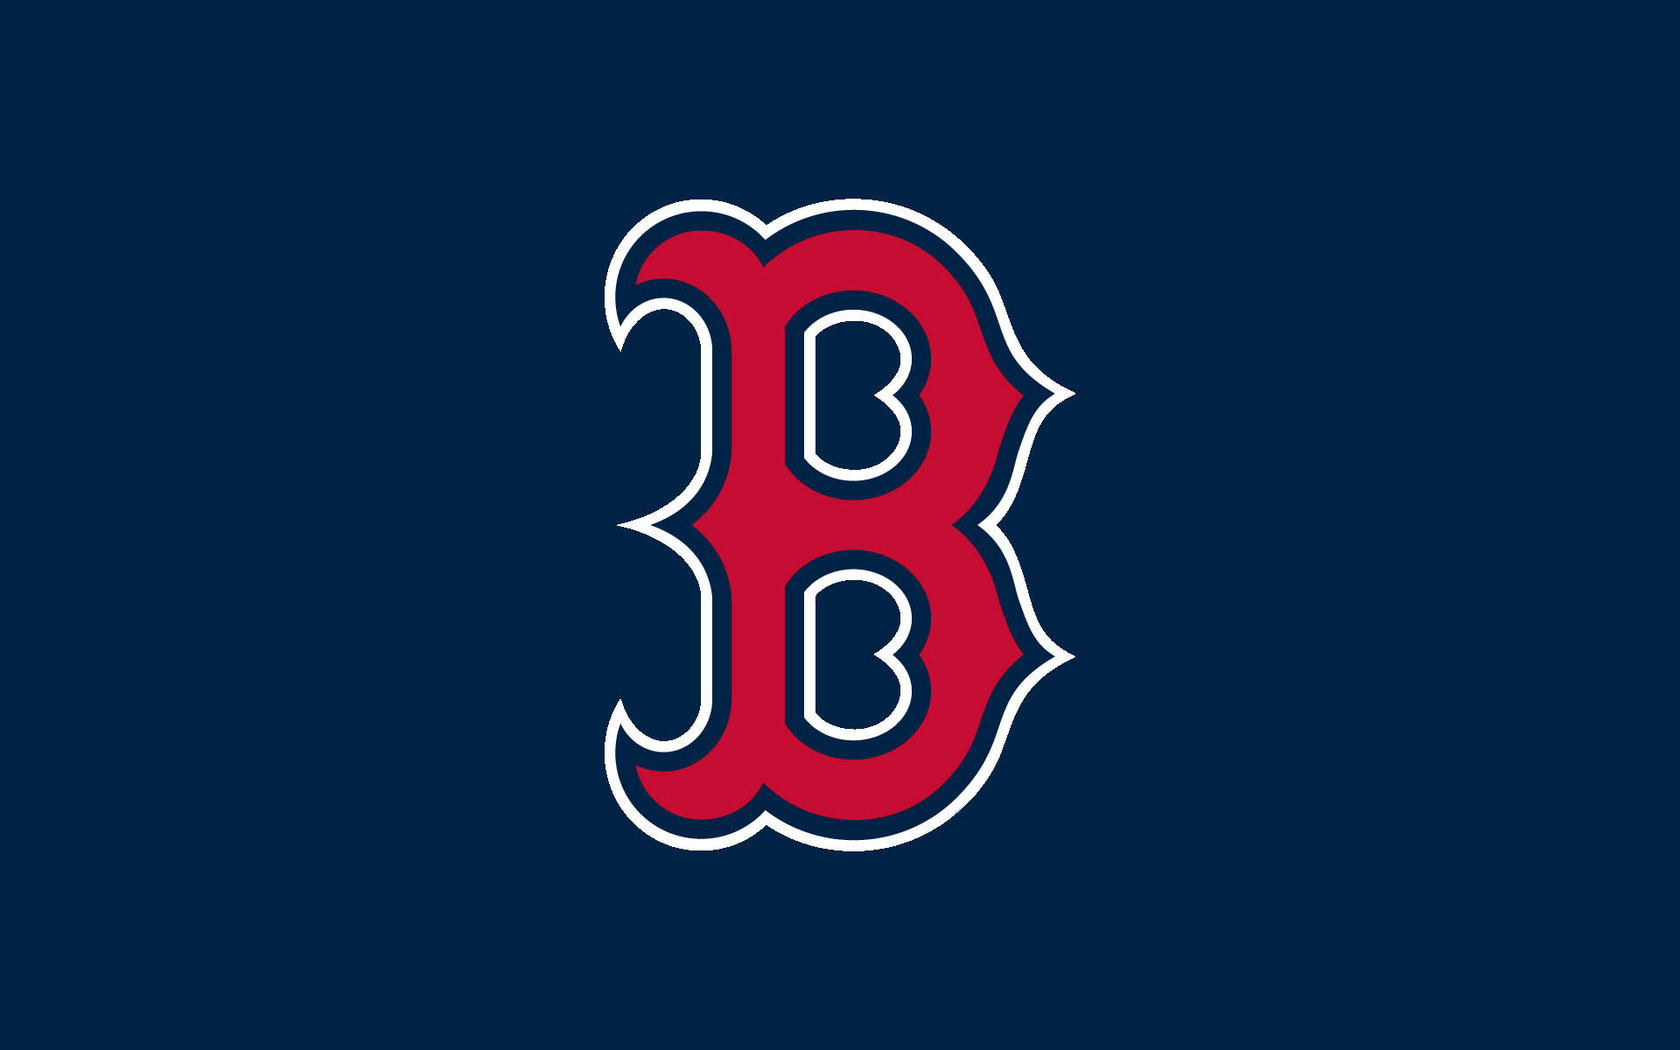 Boston Red Sox wallpaper 18518 1680x1050